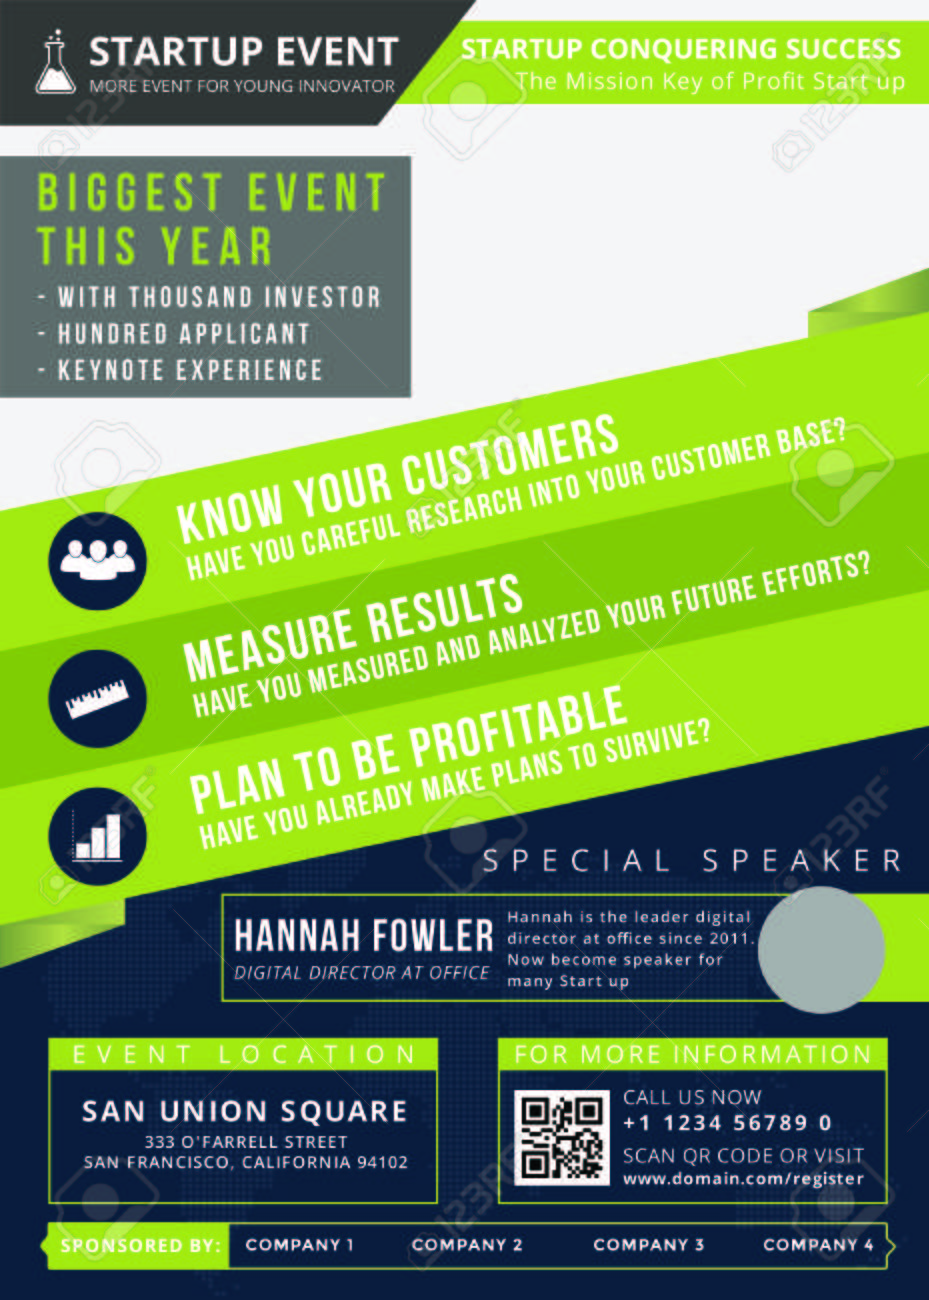 Startup Event Flyer Is The Modern Flyer For You To Invite People To The Startup Event